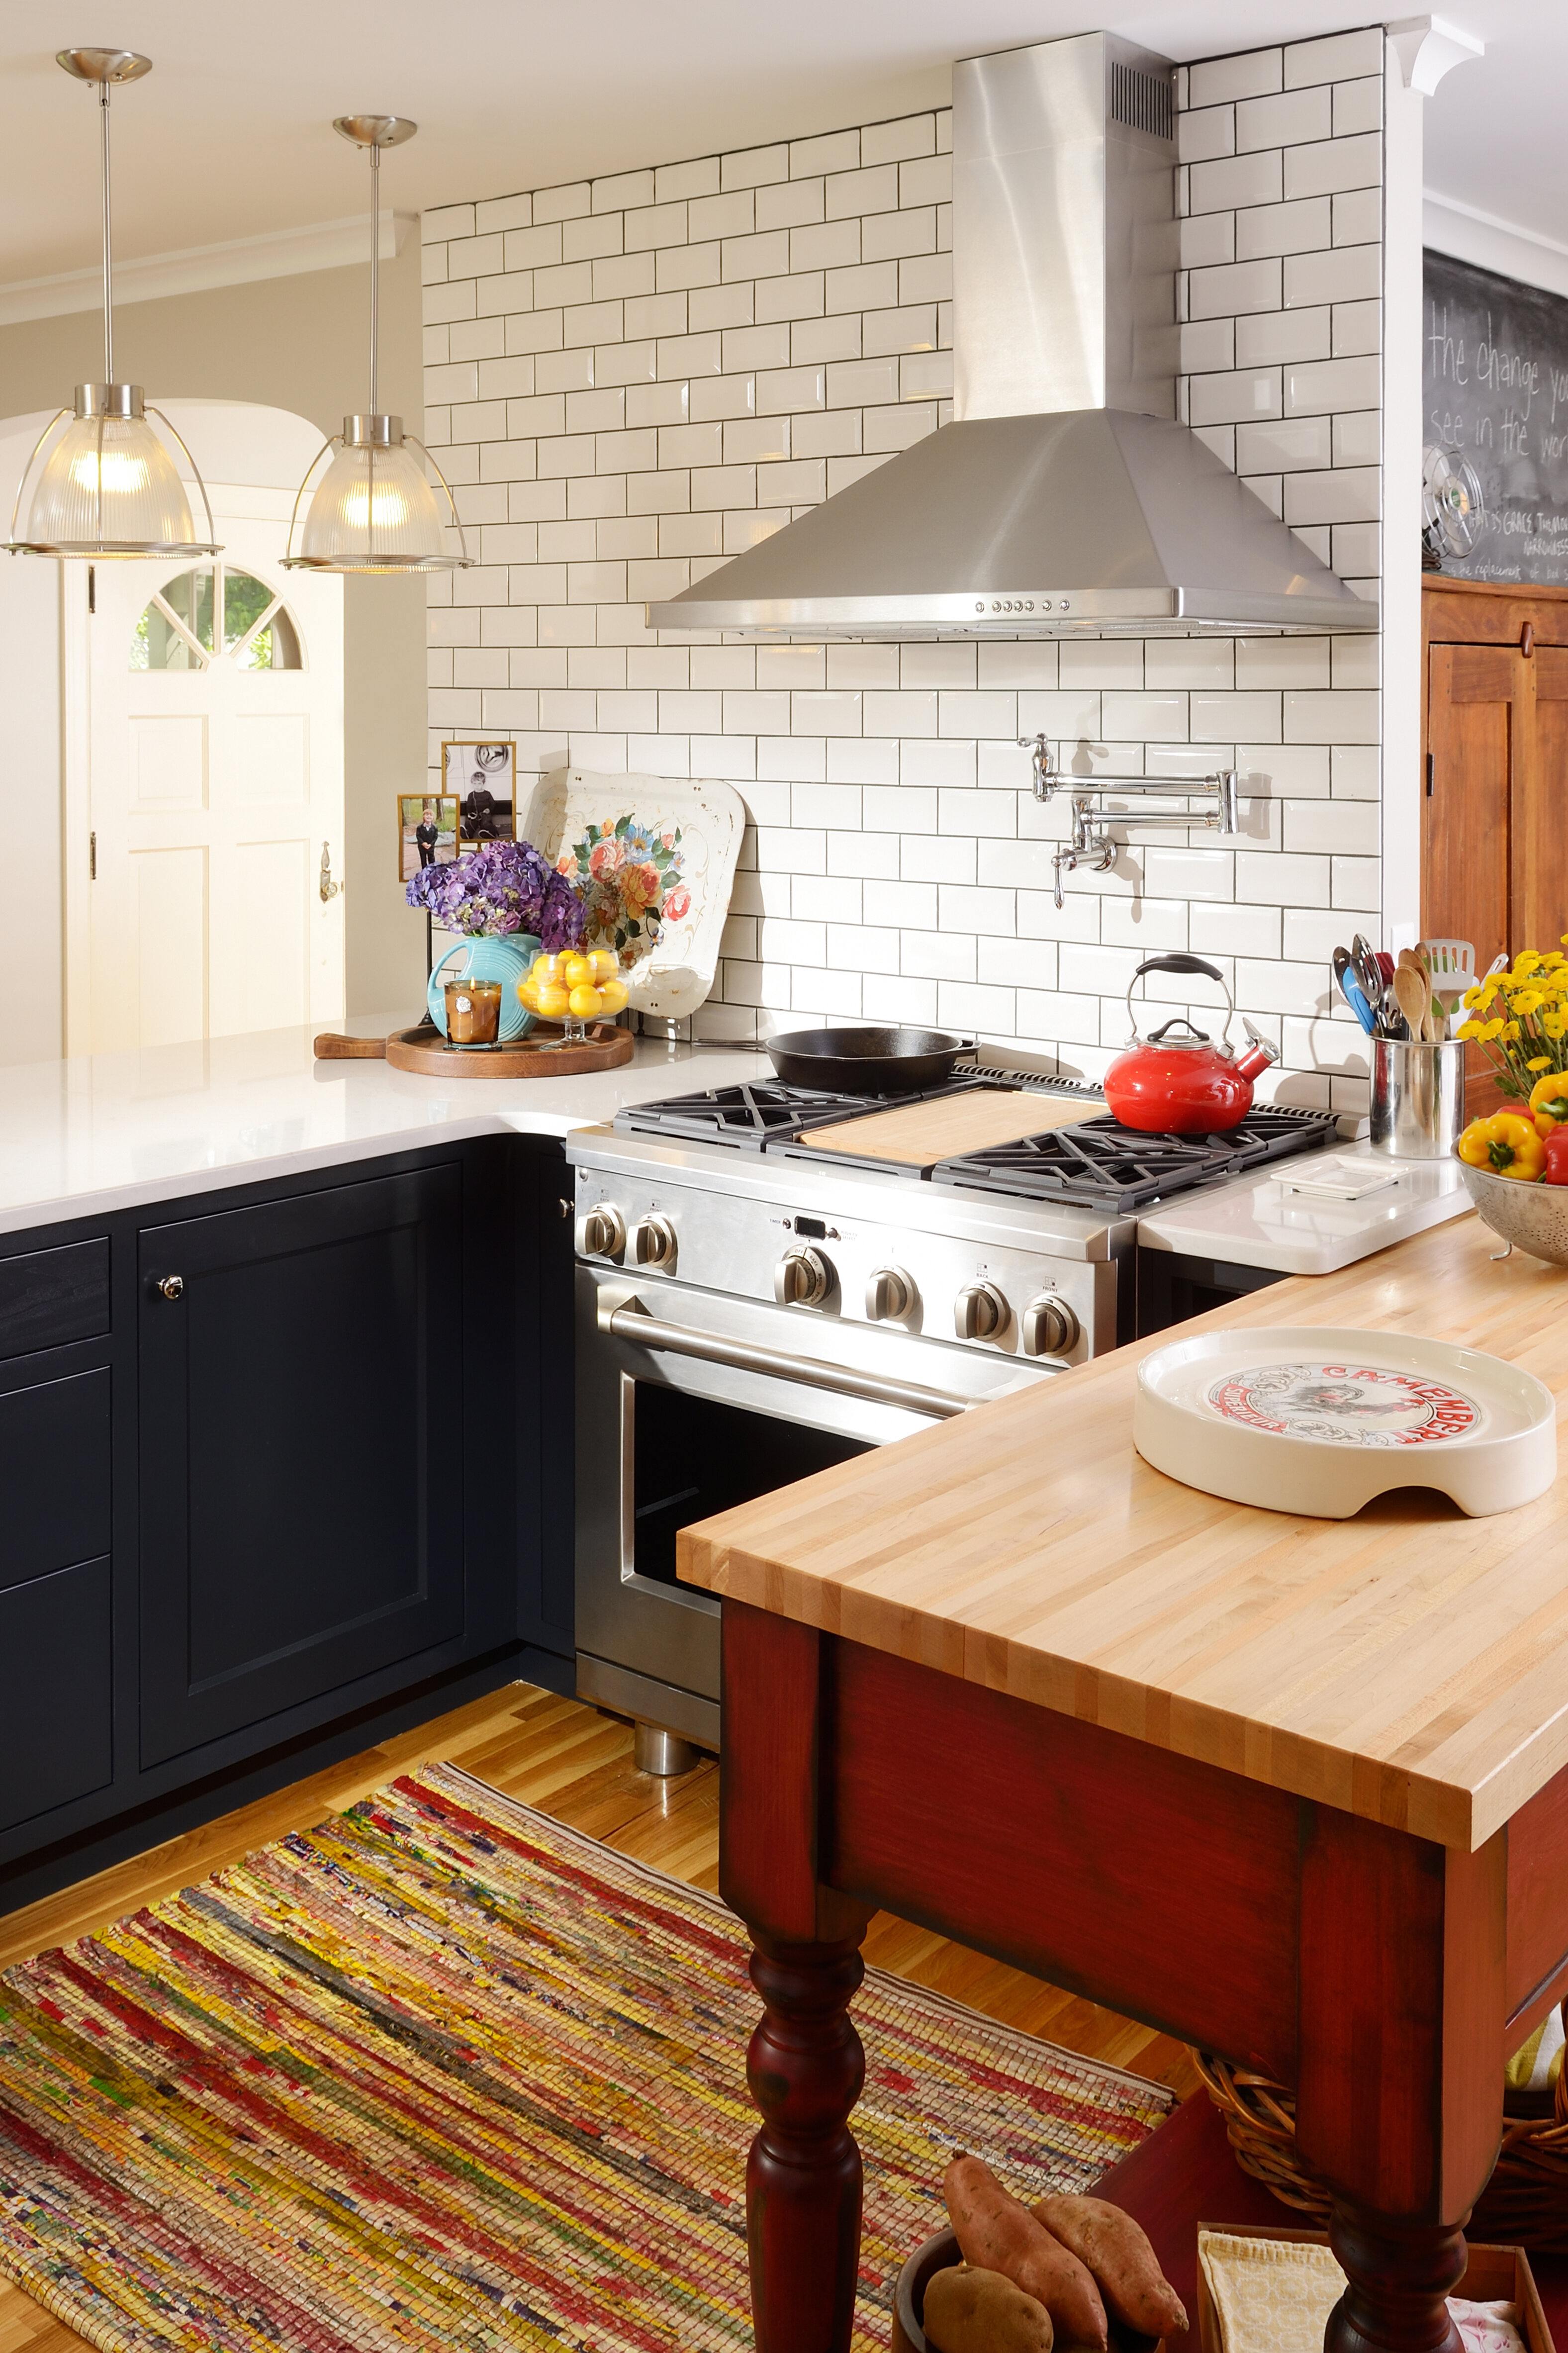 Temporary Solutions For Your Rental Kitchen | Wayfair